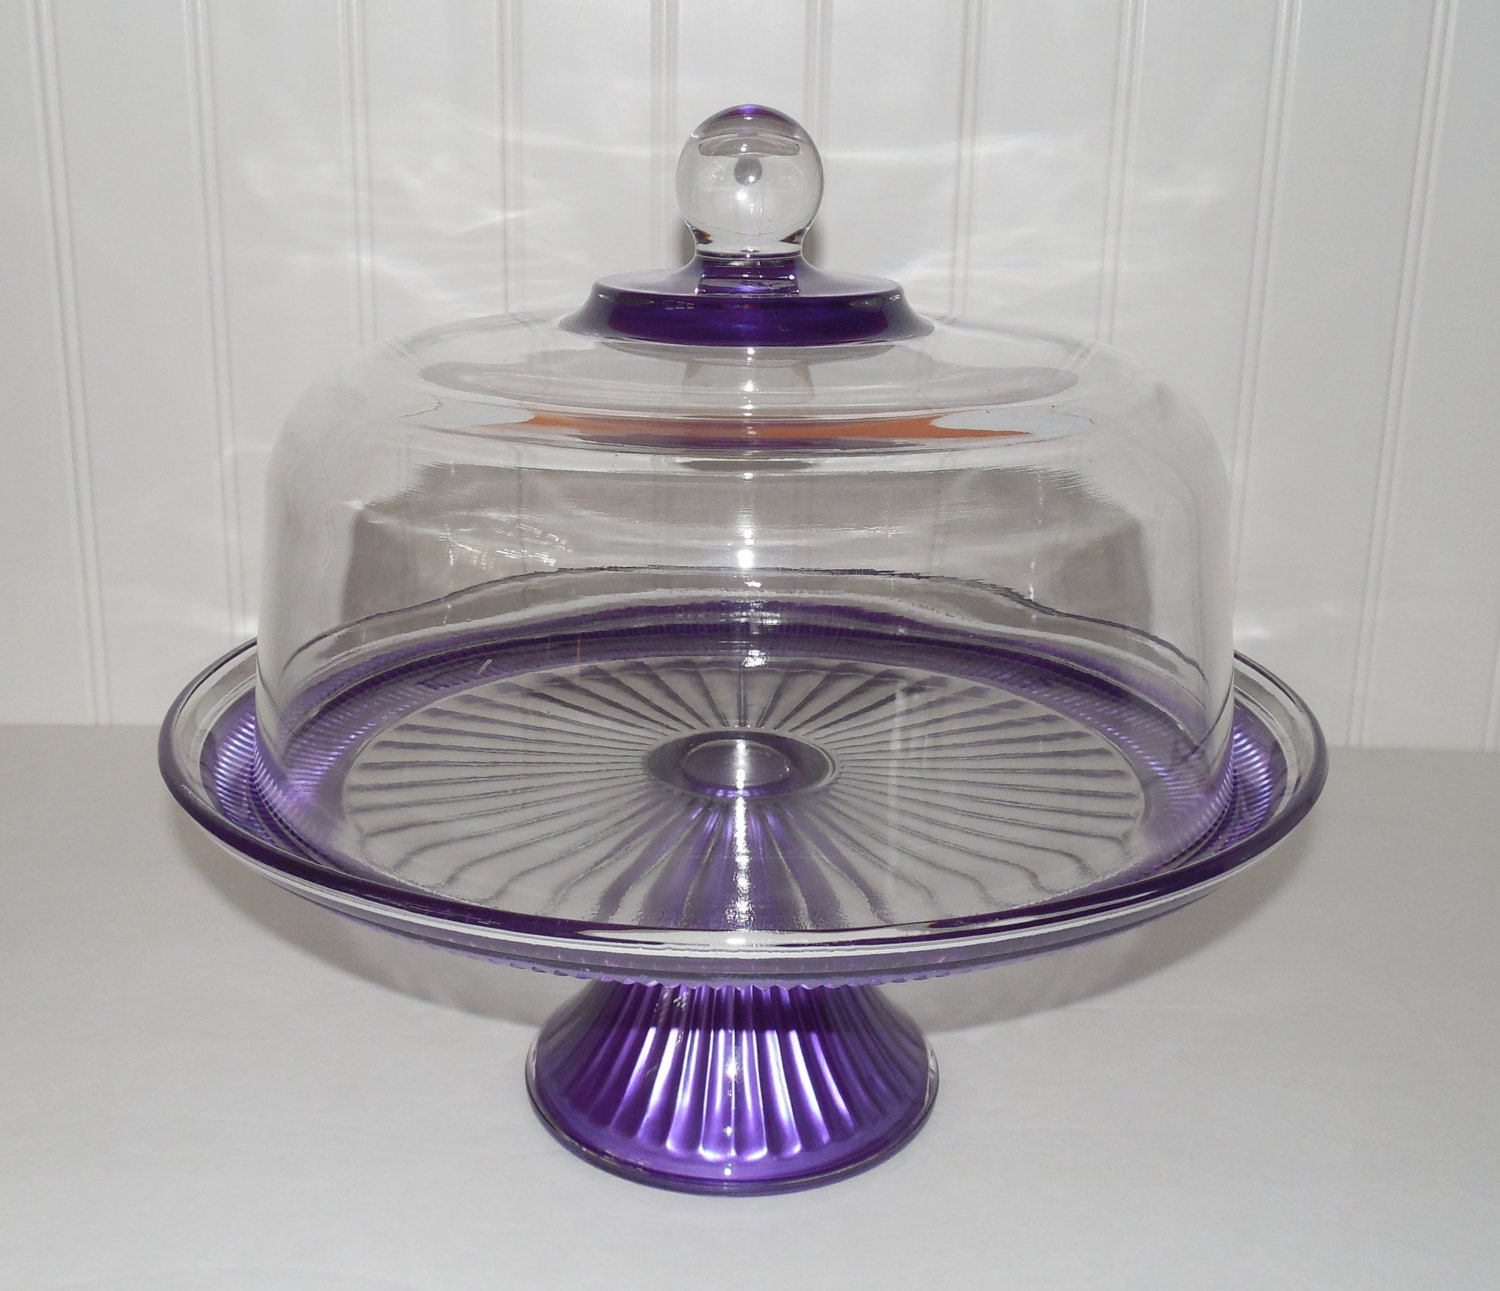 Cake stand and dome purple cake stand glass pasty dome for Colored glass cake stand